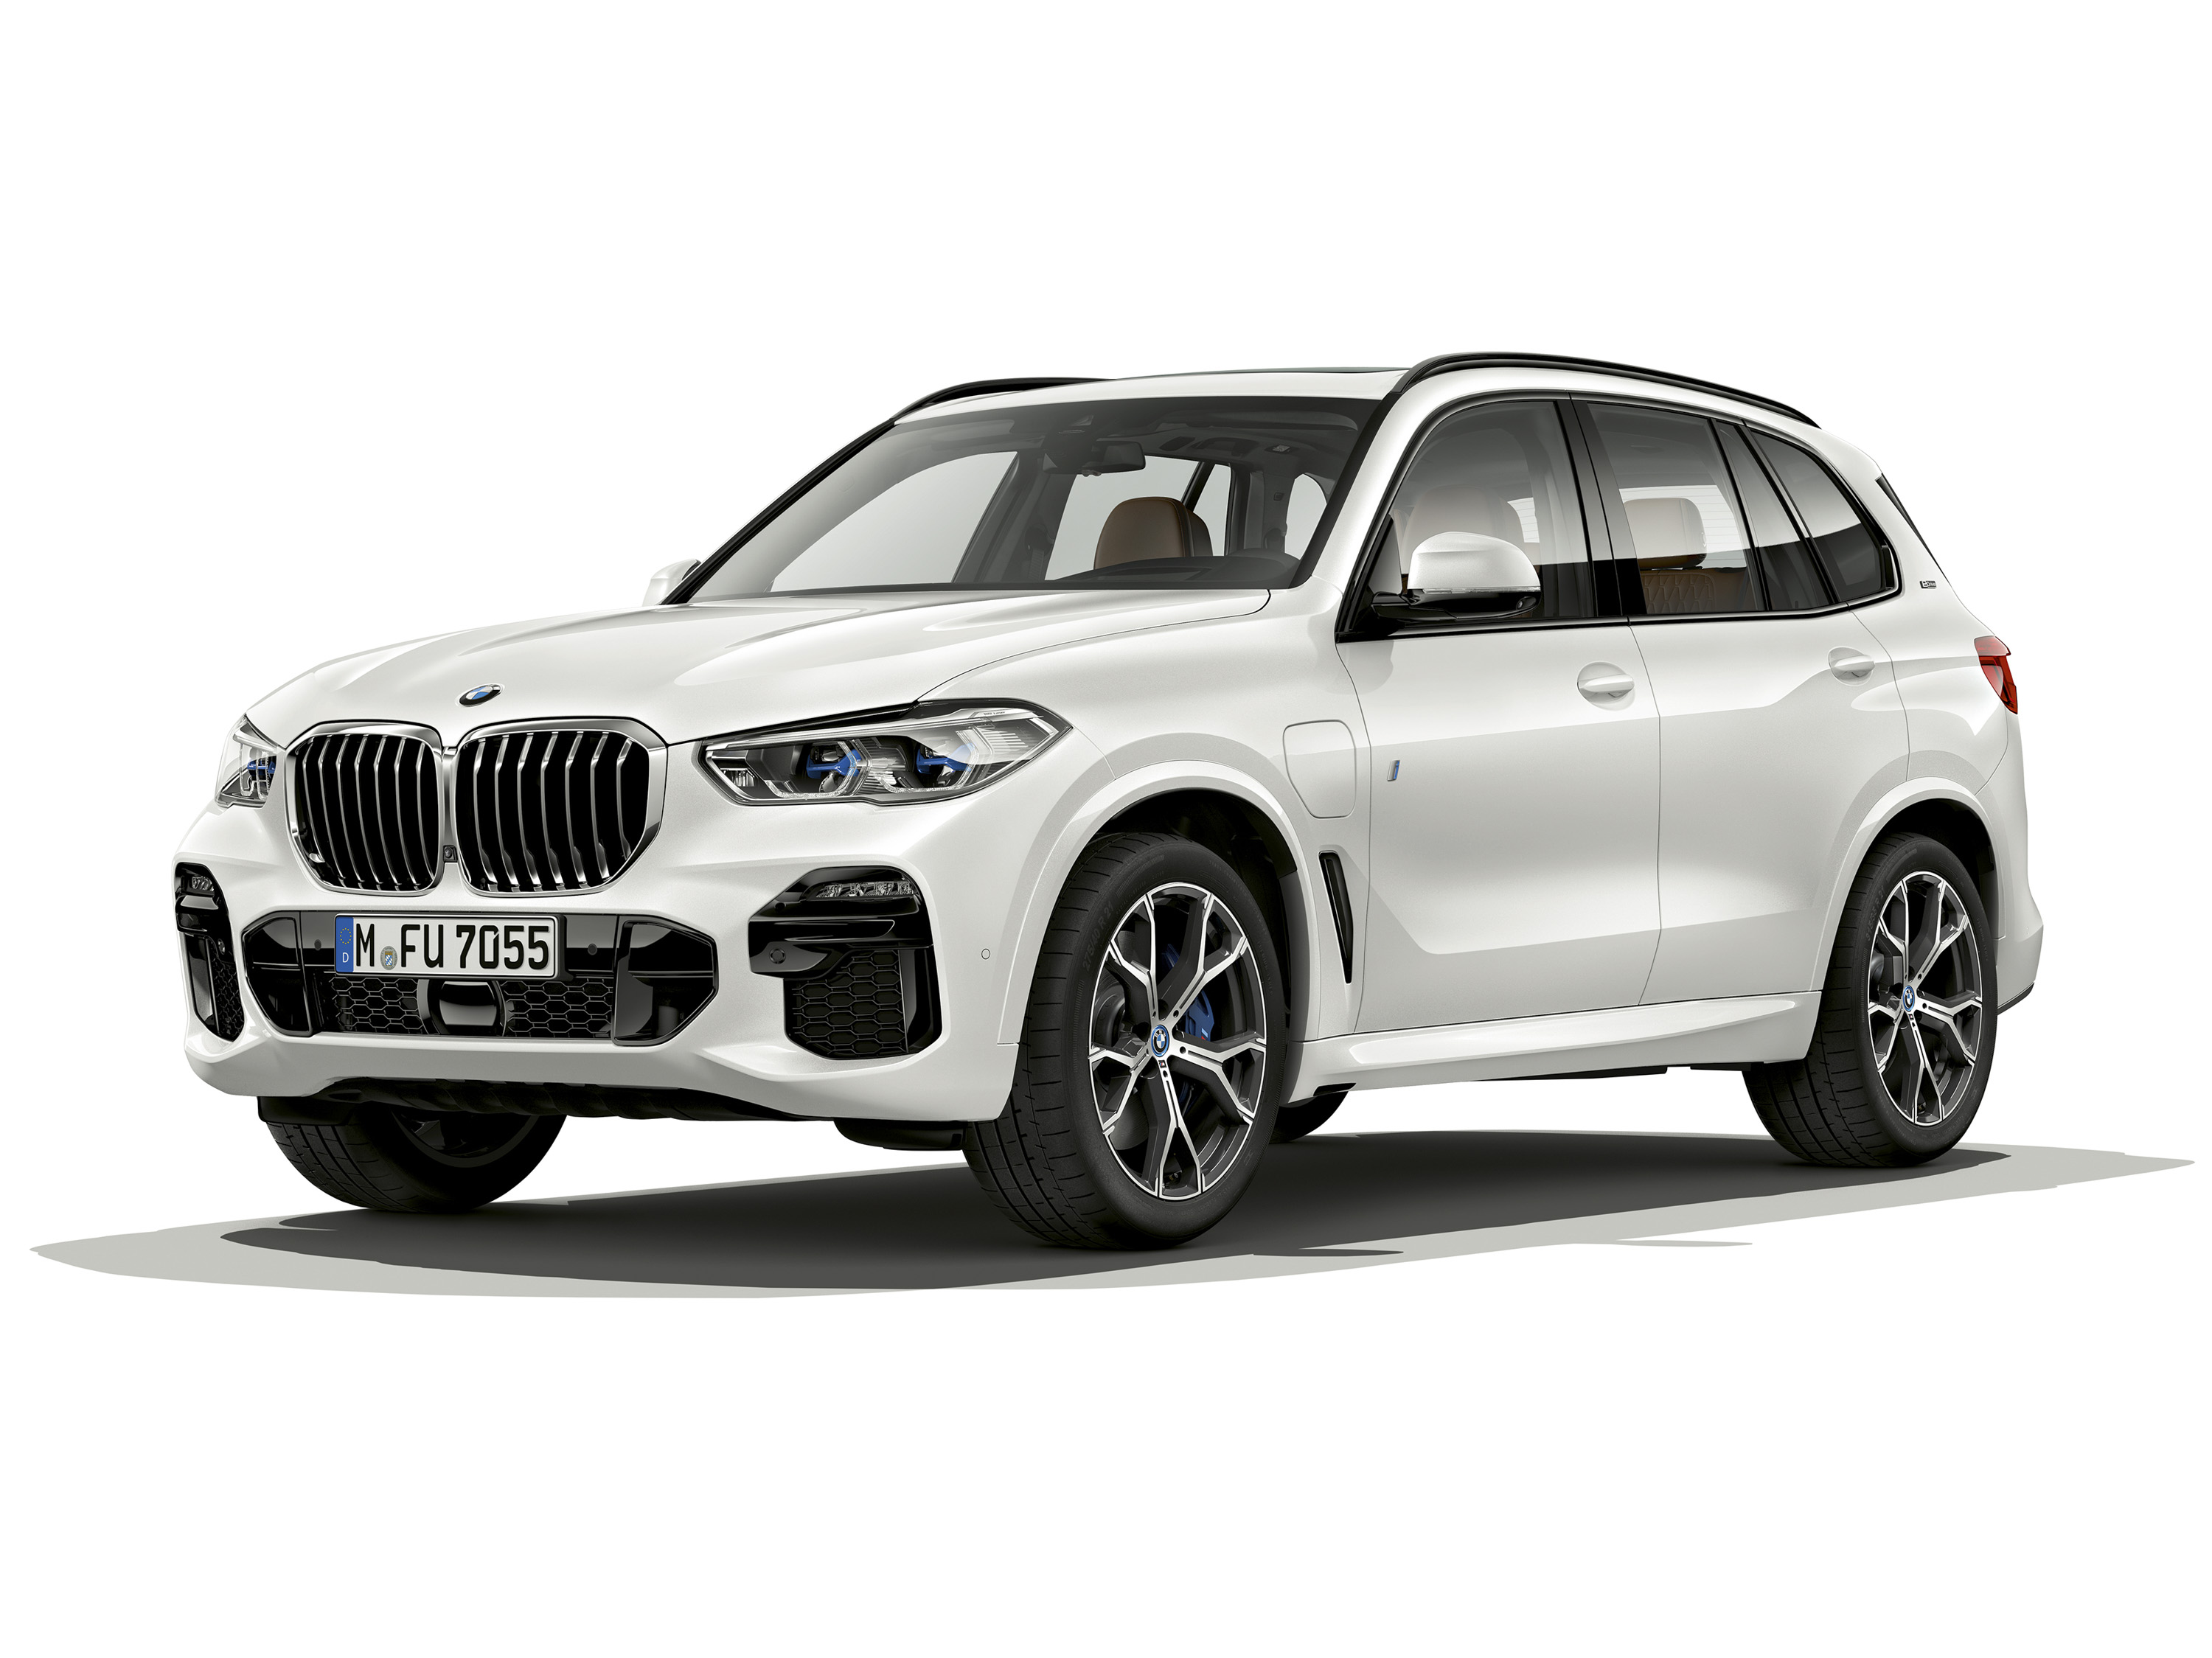 2019 Bmw X5 Xdrive45e Iperformance Top Speed